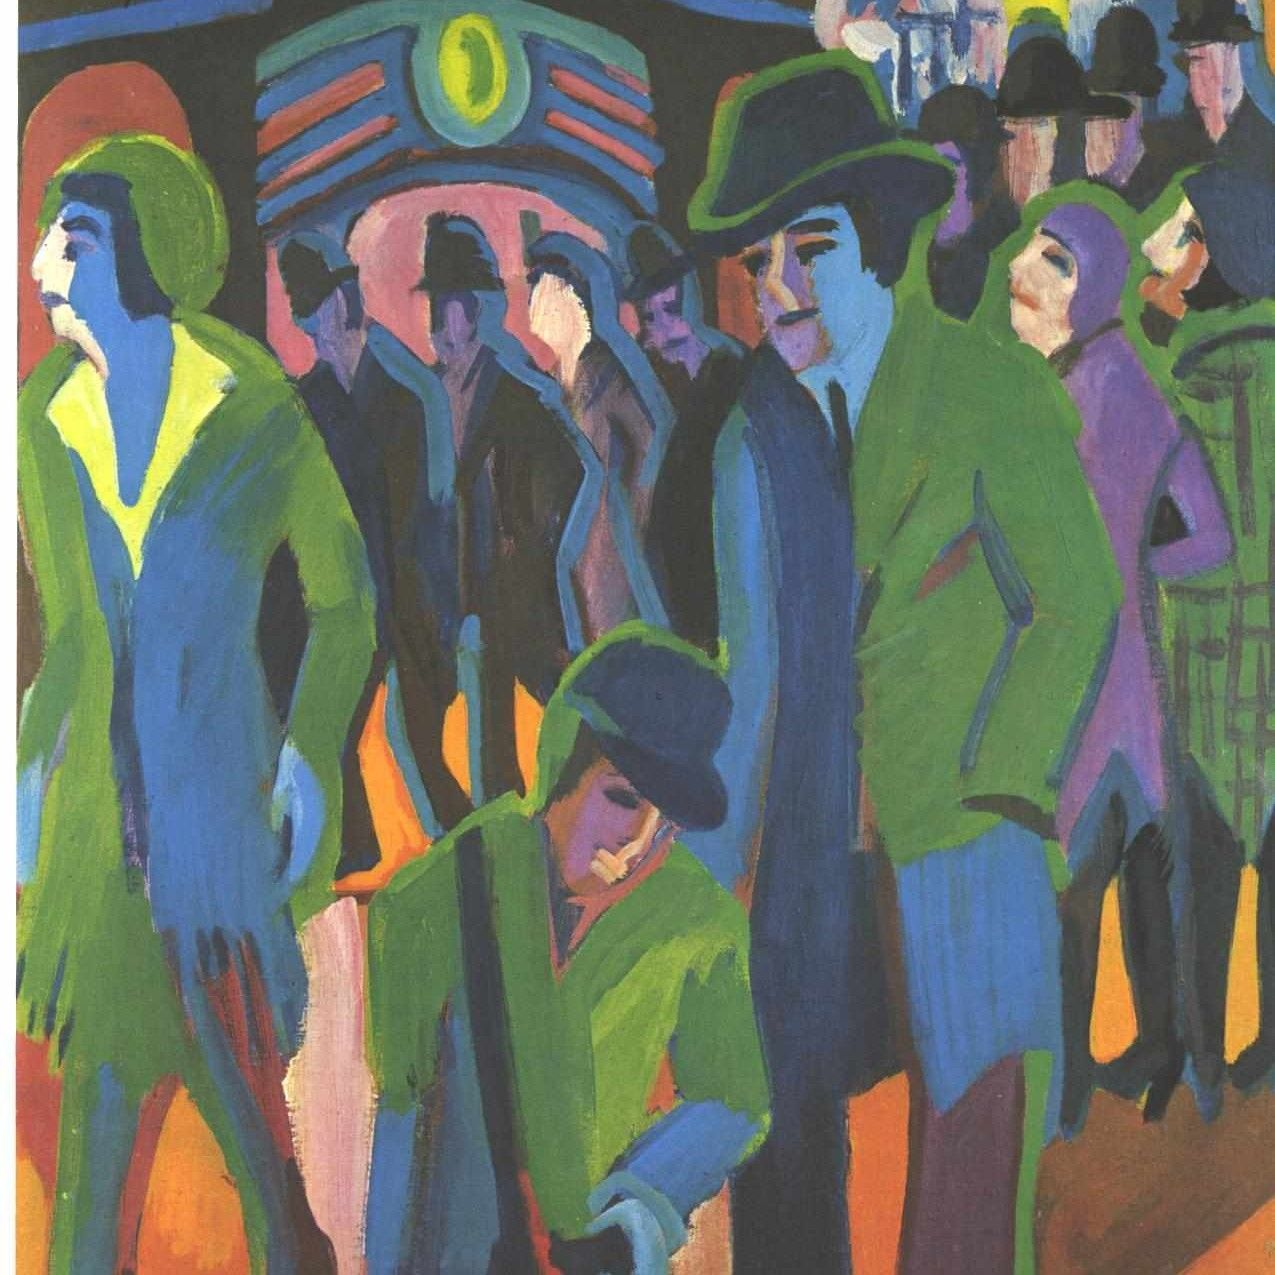 Ernst Ludwig Kirchner Expressionism | Ernst Ludwig Kirchner - Street scene with green lady